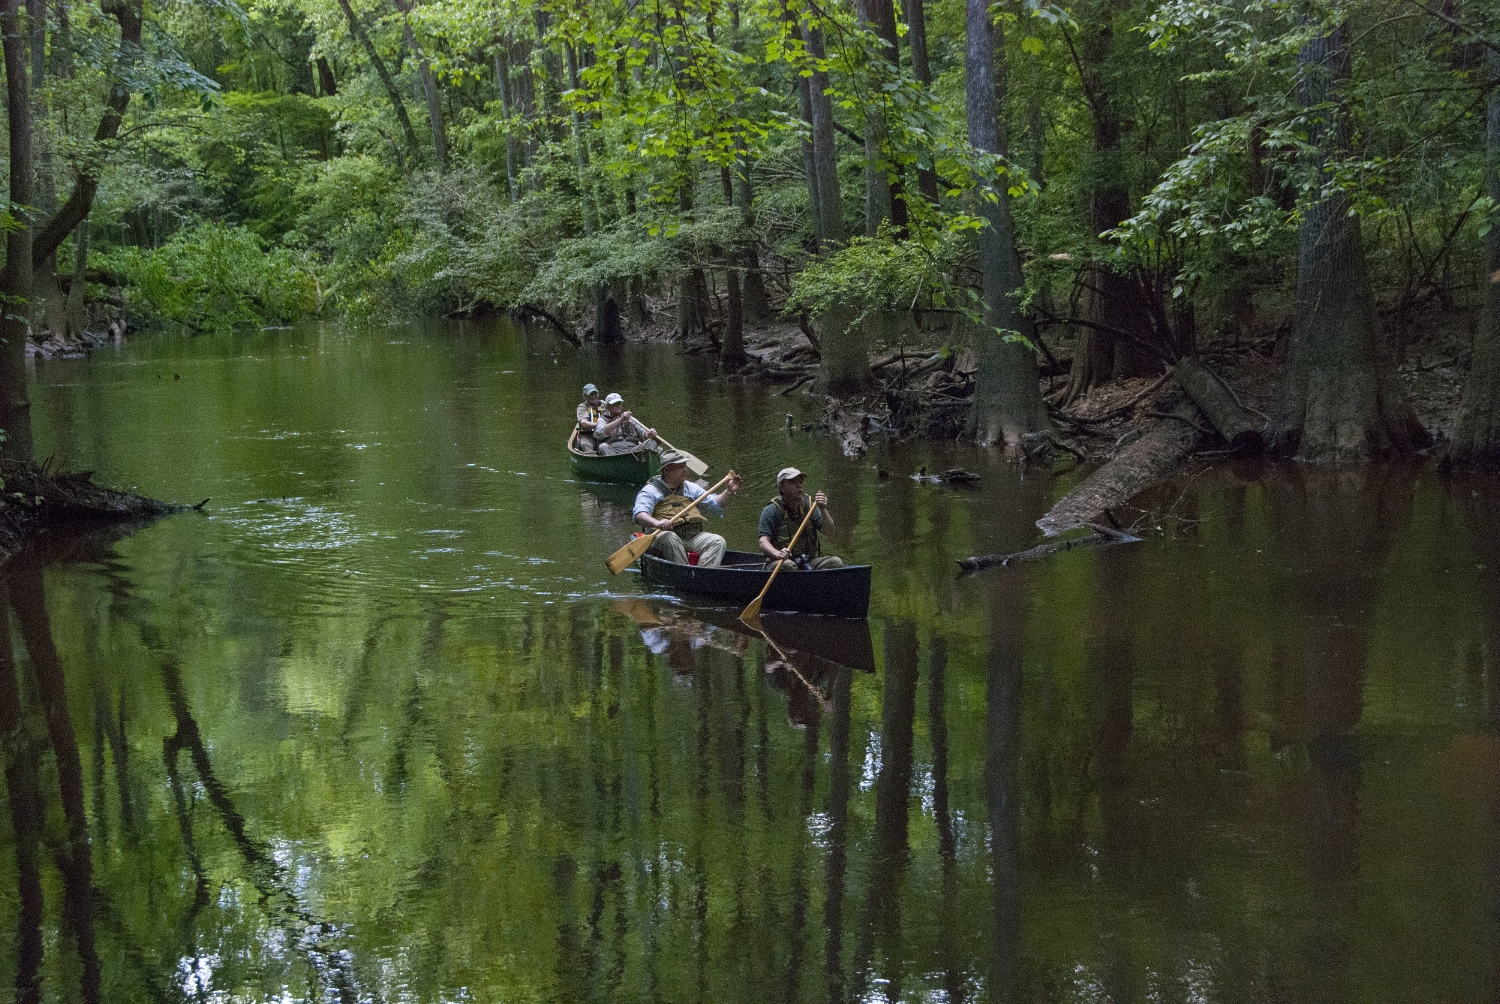 If you want to get away from the crowds for a peaceful day -- or weekend -- on the water, all you need is a canoe or kayak,a car-top carrier, and a plan. The Capital City - Lake Murray Country tourism region can help with the plan.